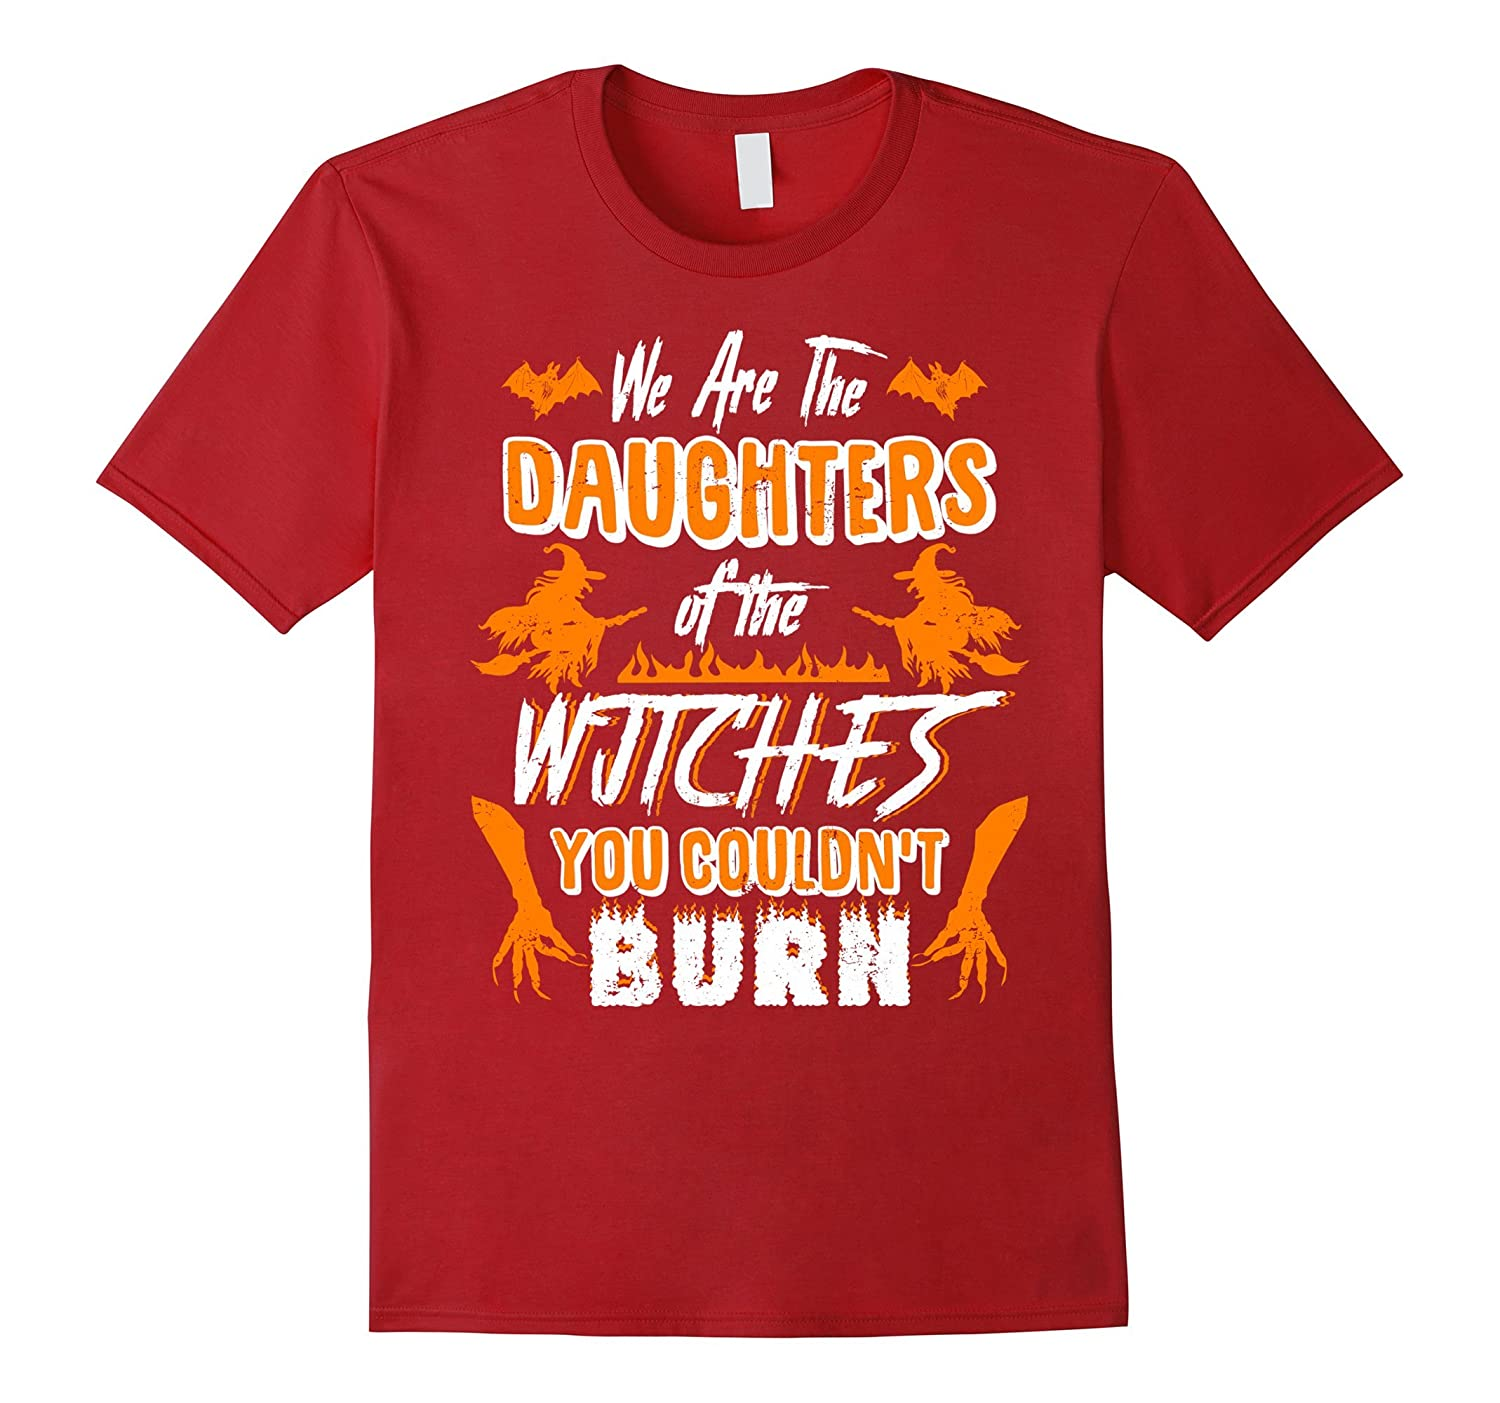 We are the daughter of the witches shirt